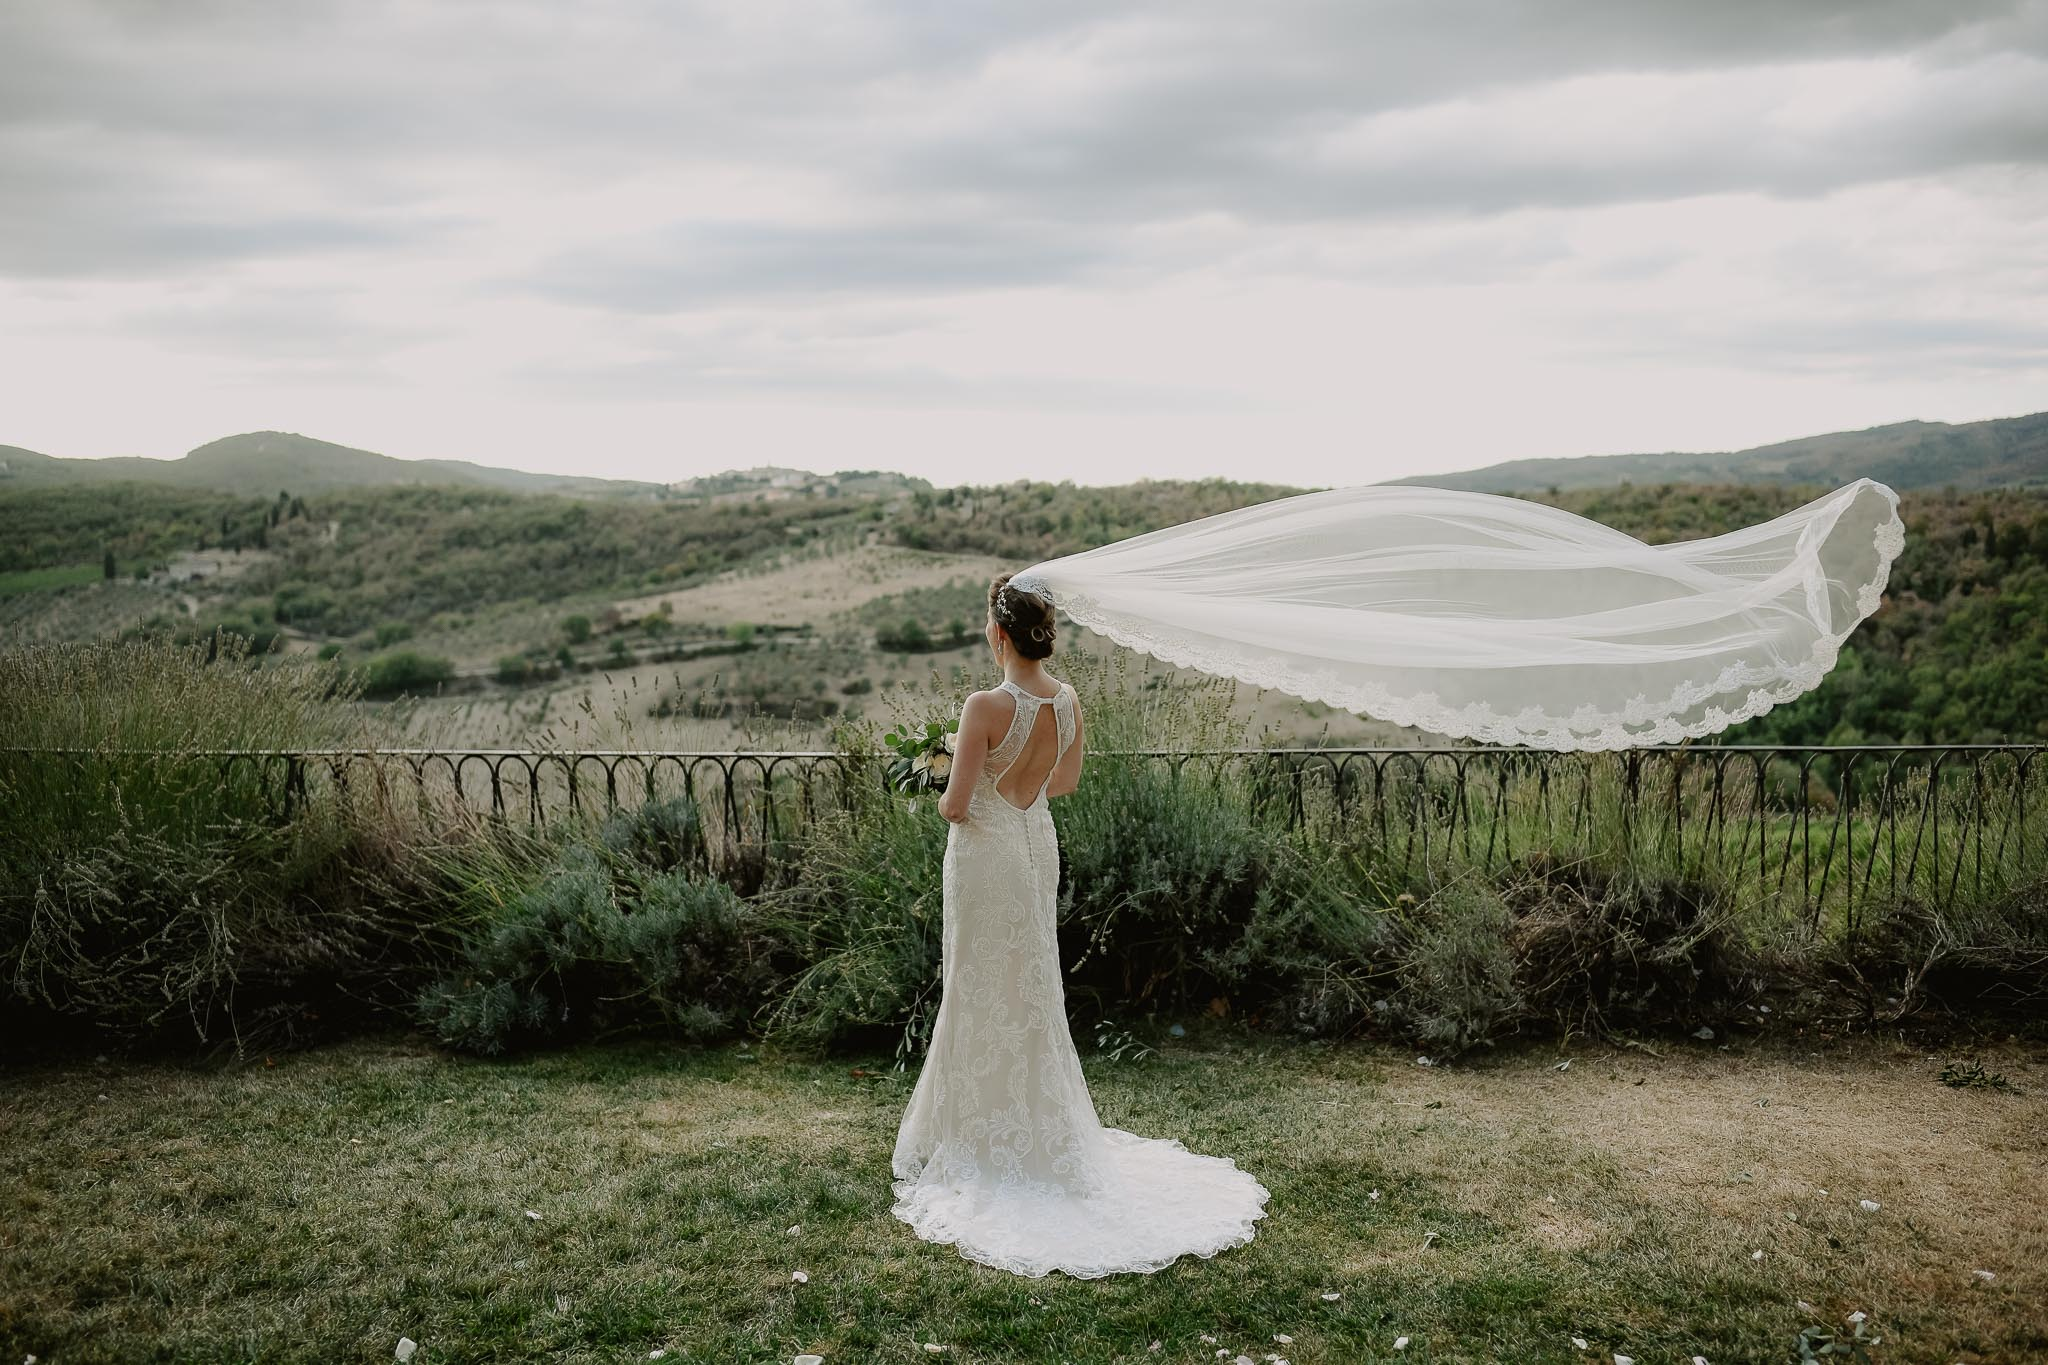 D850-field-test-real-world-review-wedding-6